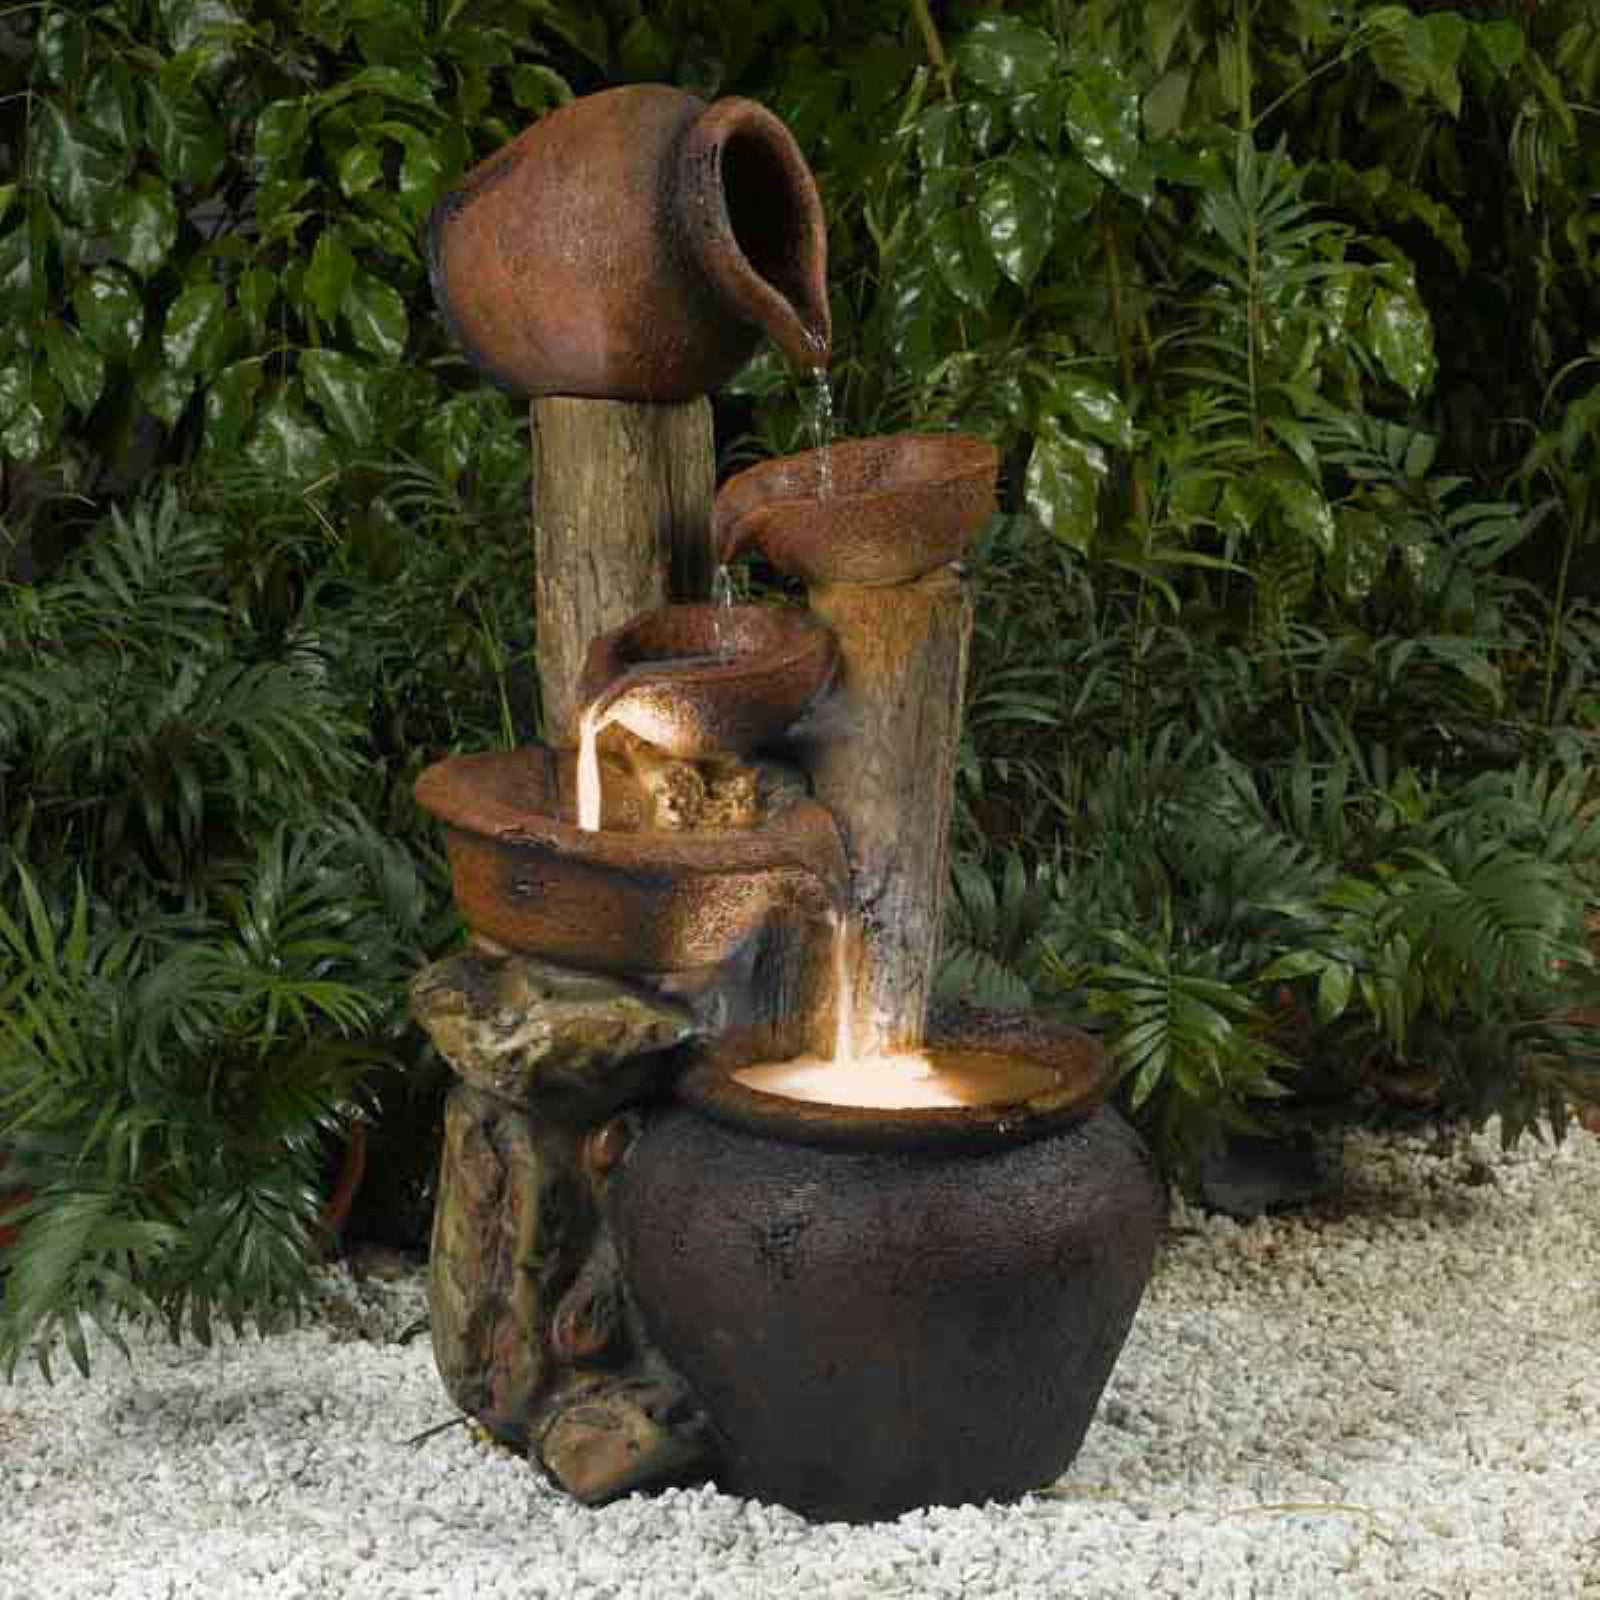 Jeco Pentole Pot Indoor Outdoor Fountain with Illumination by Jeco